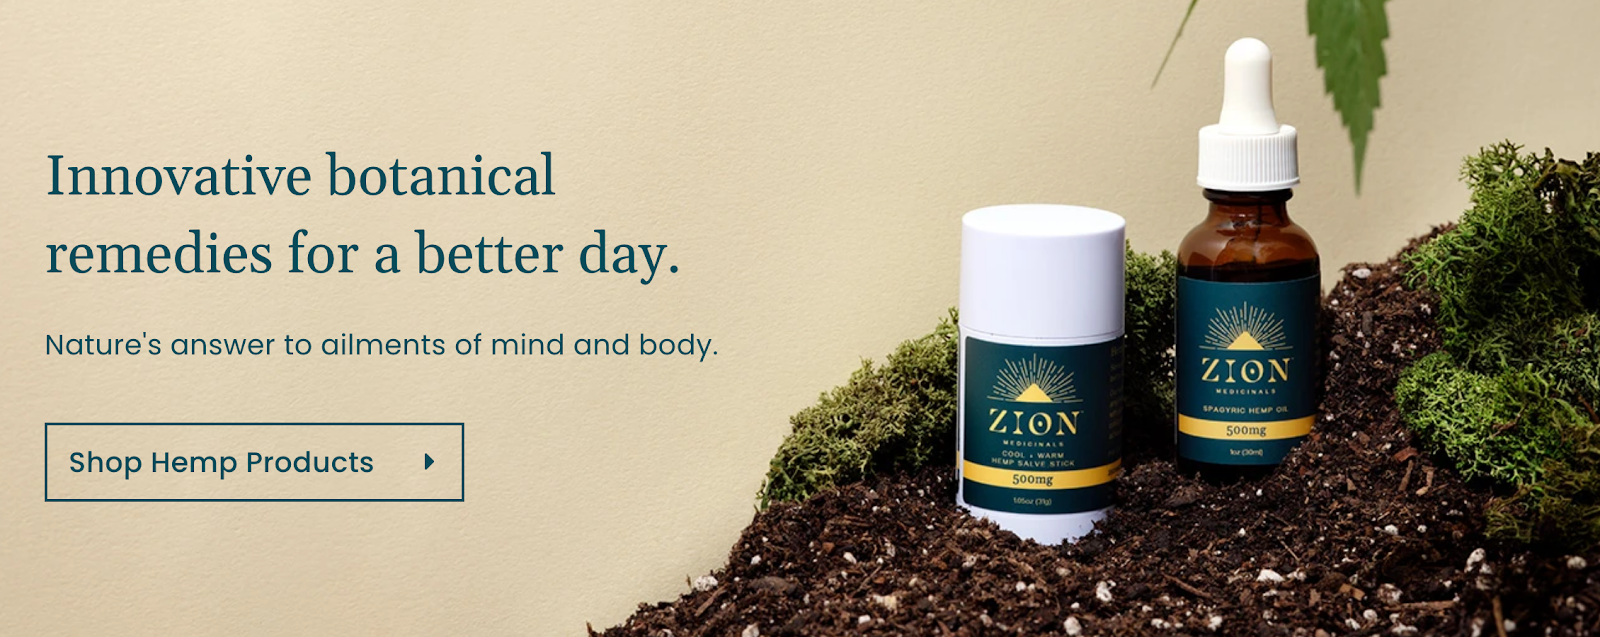 Zion Medicinals - Innovative botanical remedies for a better day